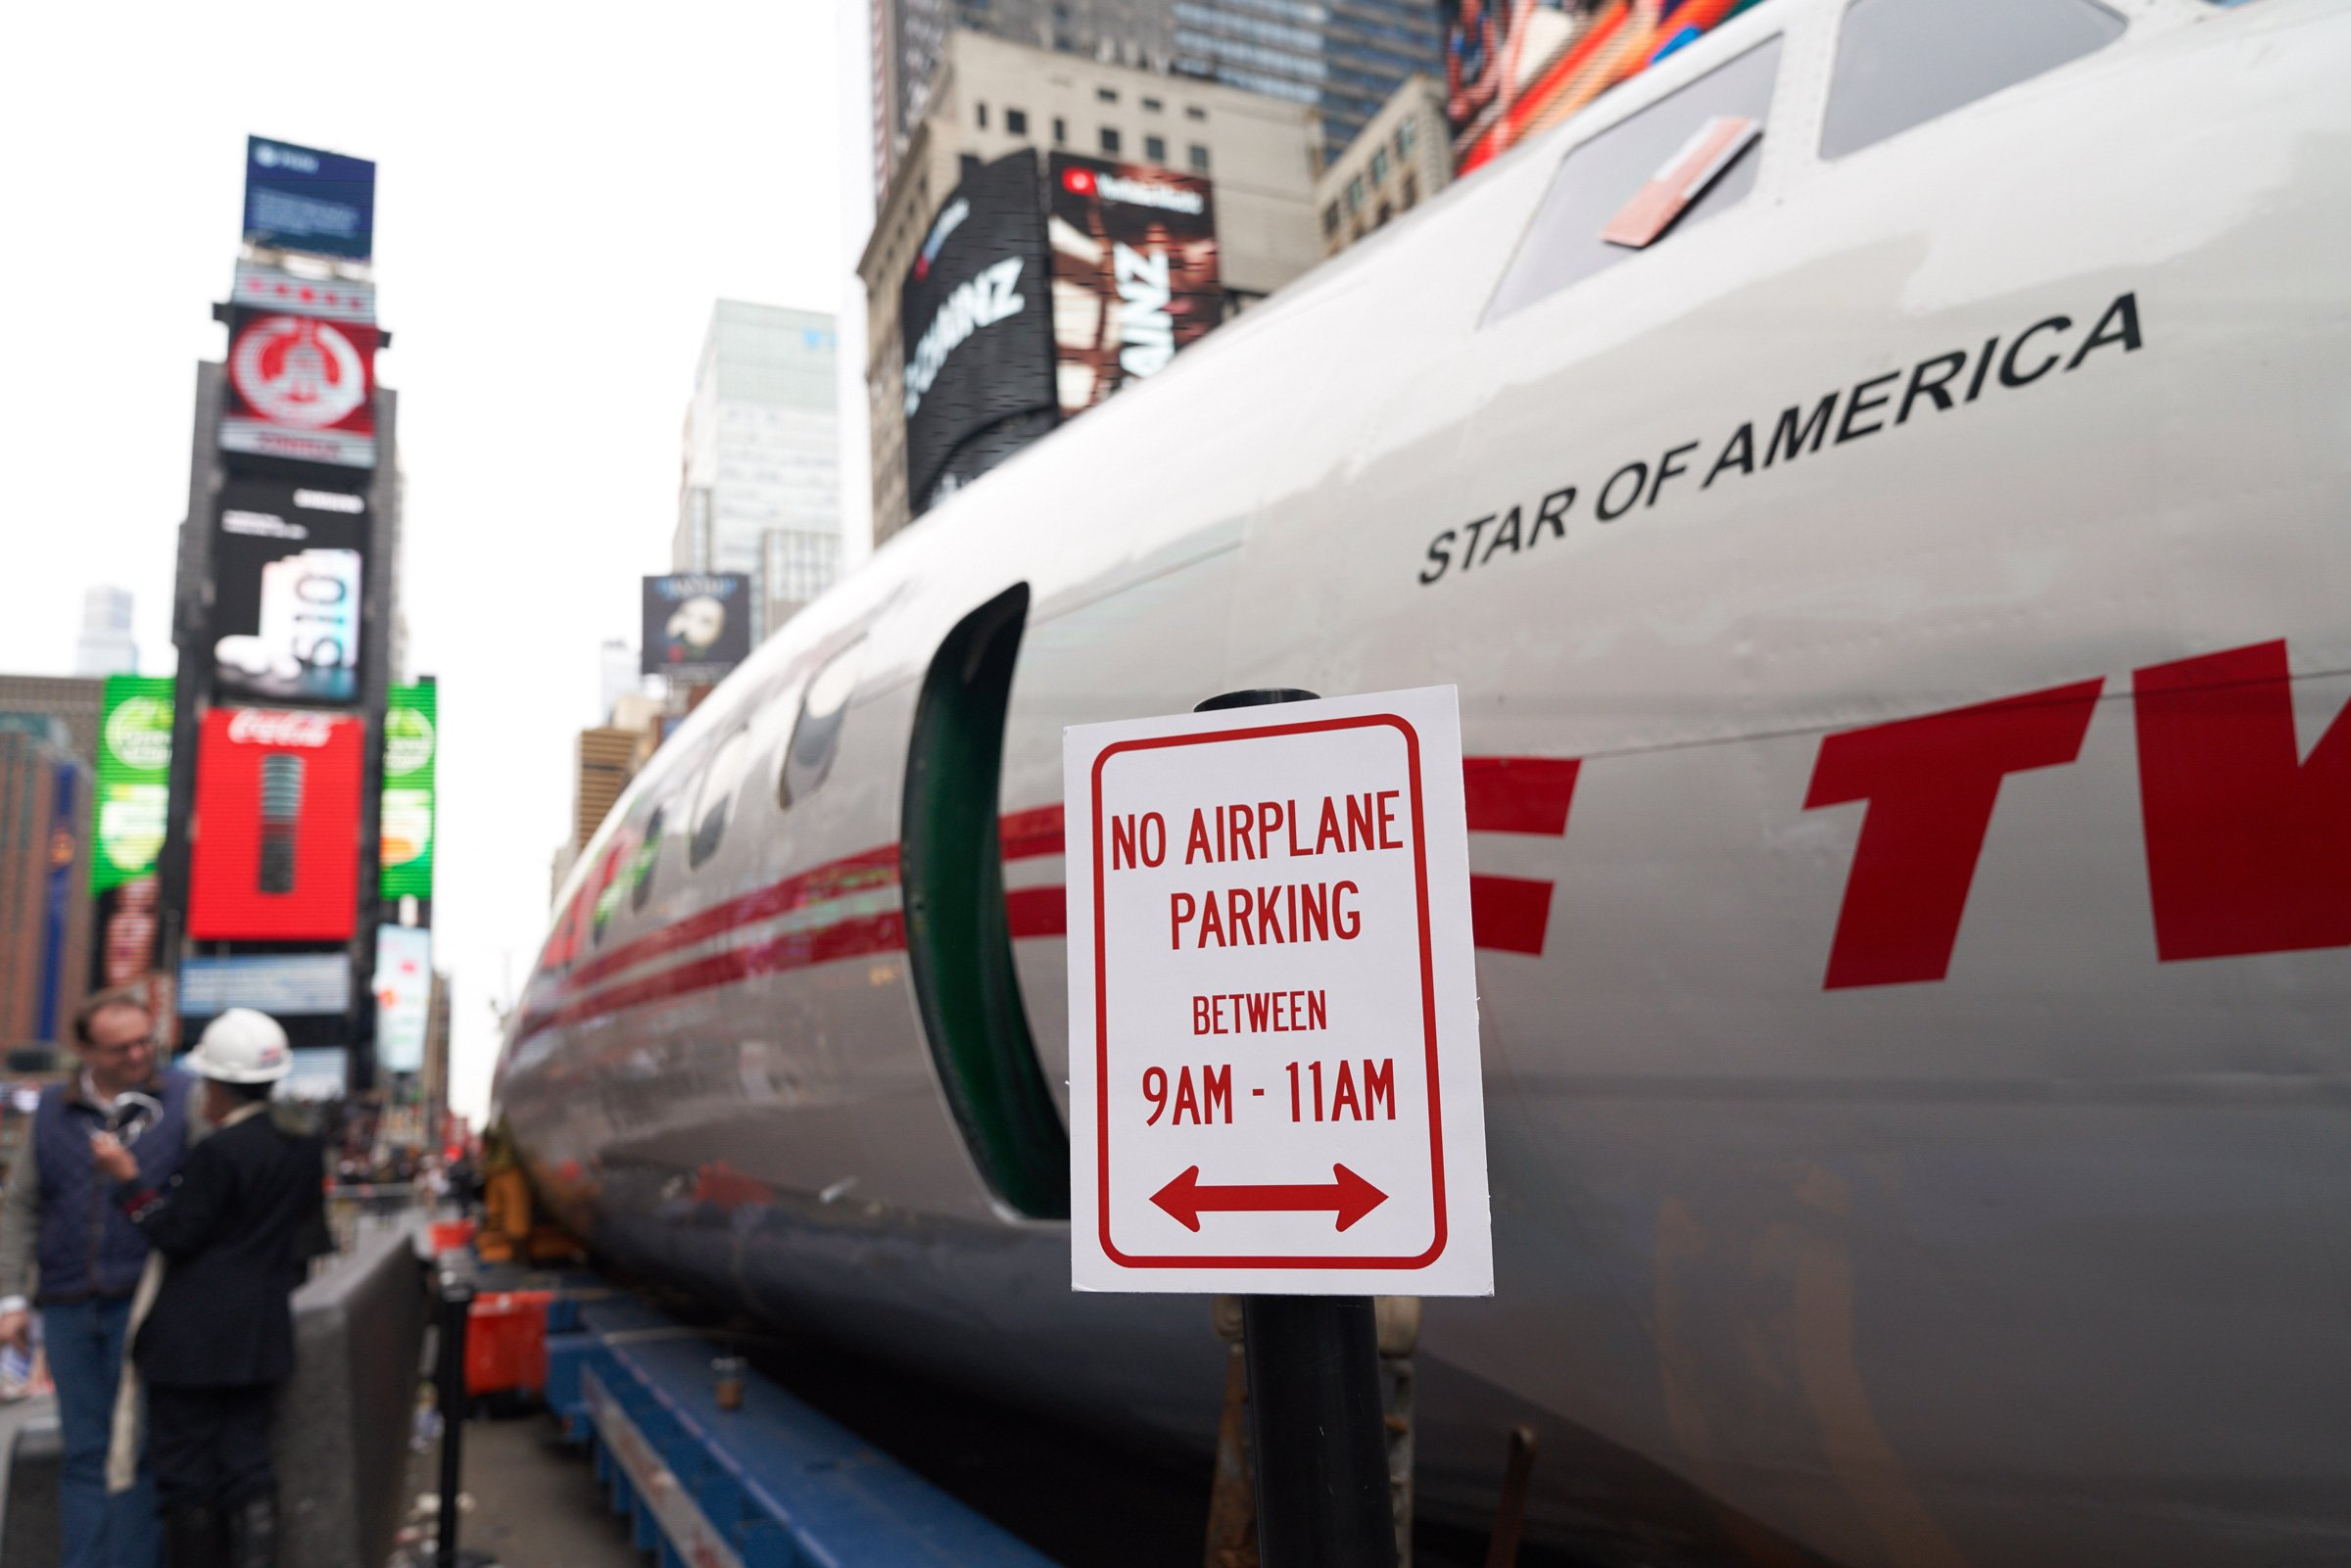 Like many New Yorkers, Connie flouted a no-parking sign in Times Square — and landed herself a (faux) ticket on March 24, 2019.